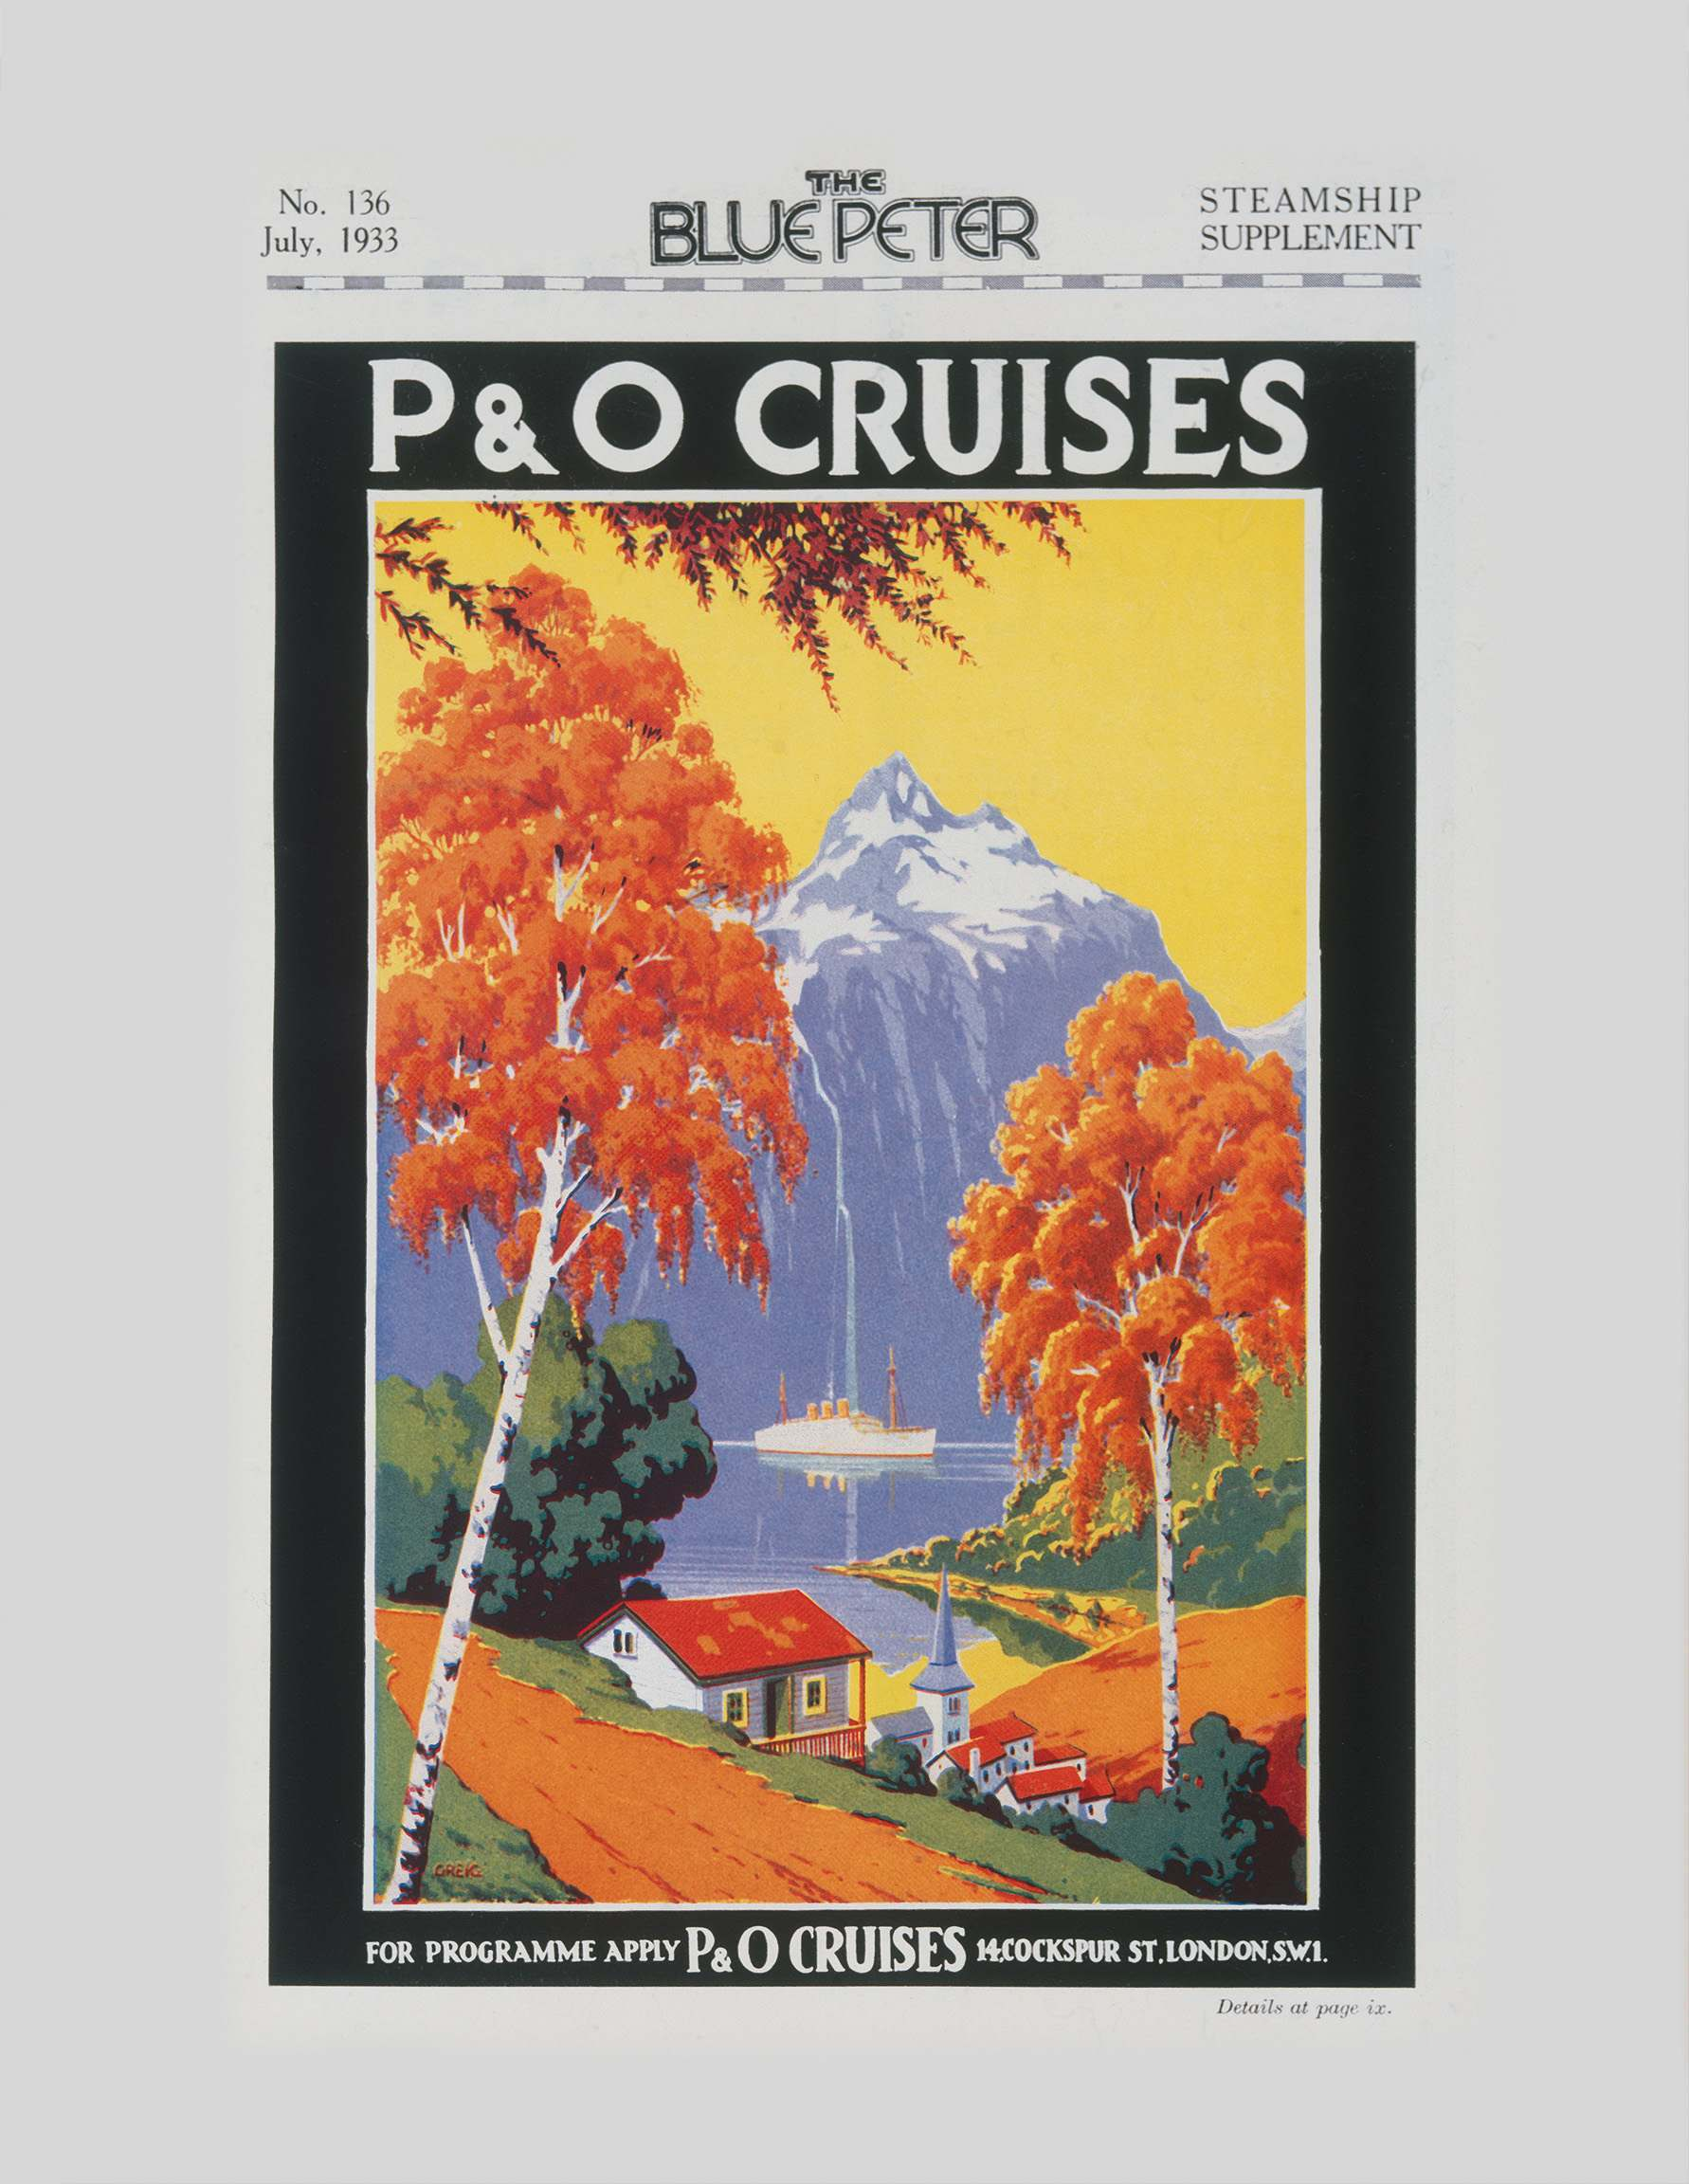 advertisement for cruises to Norway published in The Blue Peter magazine in 1933